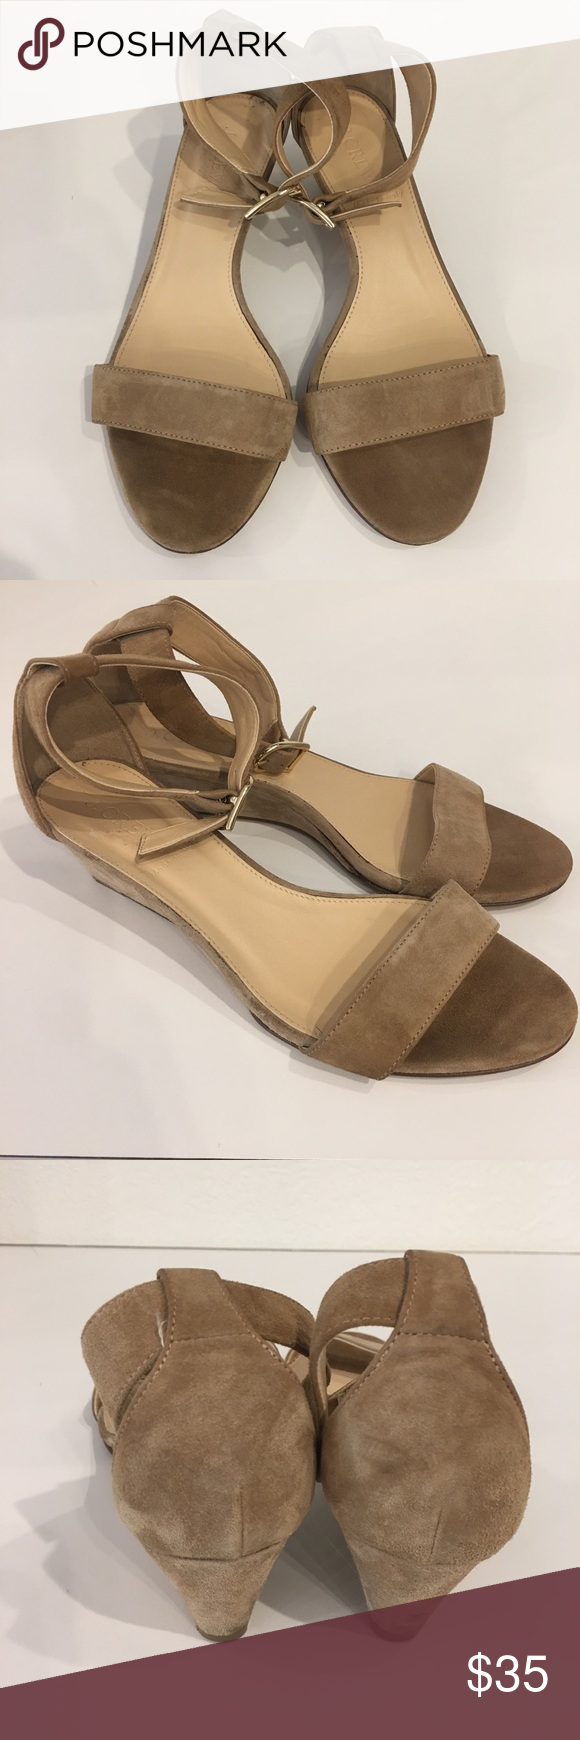 J. Crew Shoes | J. Crew Tan Suede Ankle Strap Low Wedge Sandals 7 | Color: Tan | Size: 7 #lowwedgesandals J. Crew Tan Suede Ankle Strap Low Wedge Sandals 7 J. Crew suede low wedge open toe sandals with ankle strap. Gold buckle on adjustable ankle strap. Tan.  Classic style!  Size: 7 Condition: Pre-owned.  Normal wear, some marks on back of heel and some wear to very edge of toes and inside arch.  Still plenty of life left in these beautiful sandals!   [B-CLO] J. Crew Shoes Sandals #lowwedgesanda #lowwedgesandals